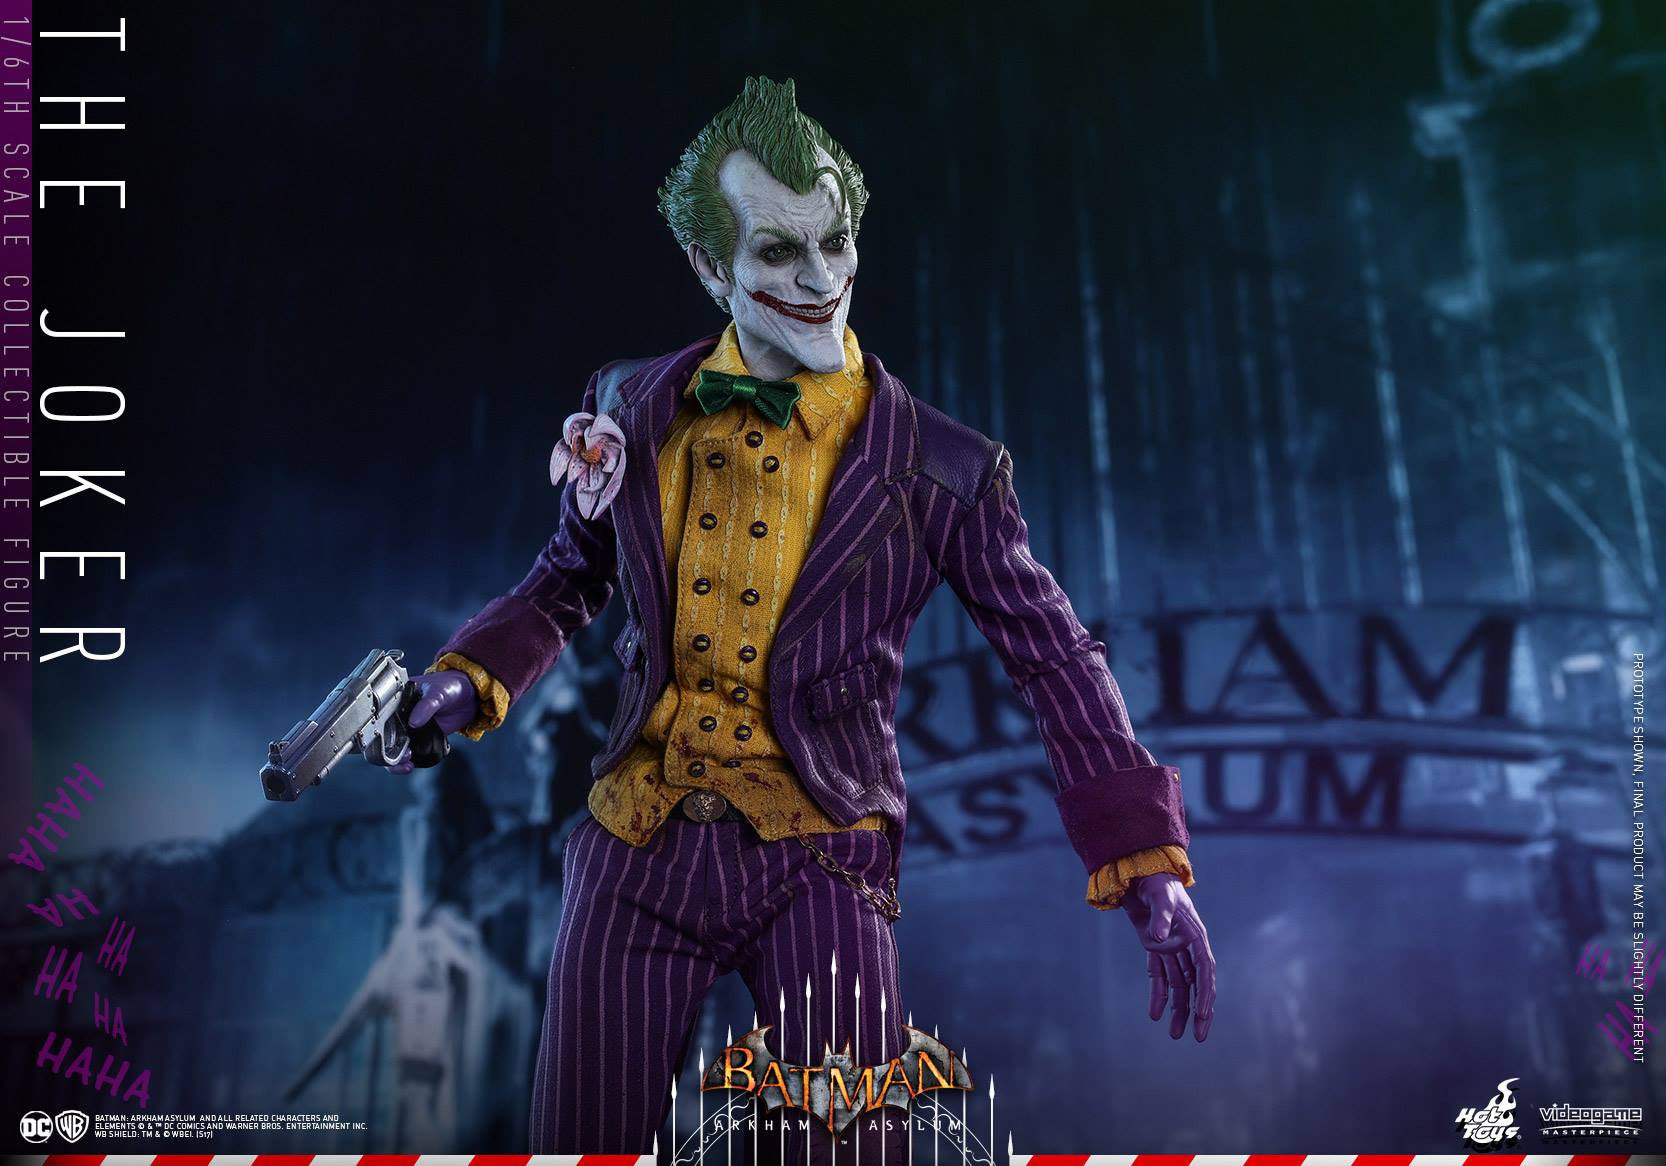 Hot Toys - VGM27 - Batman: Arkham Asylum - The Joker - Marvelous Toys - 10